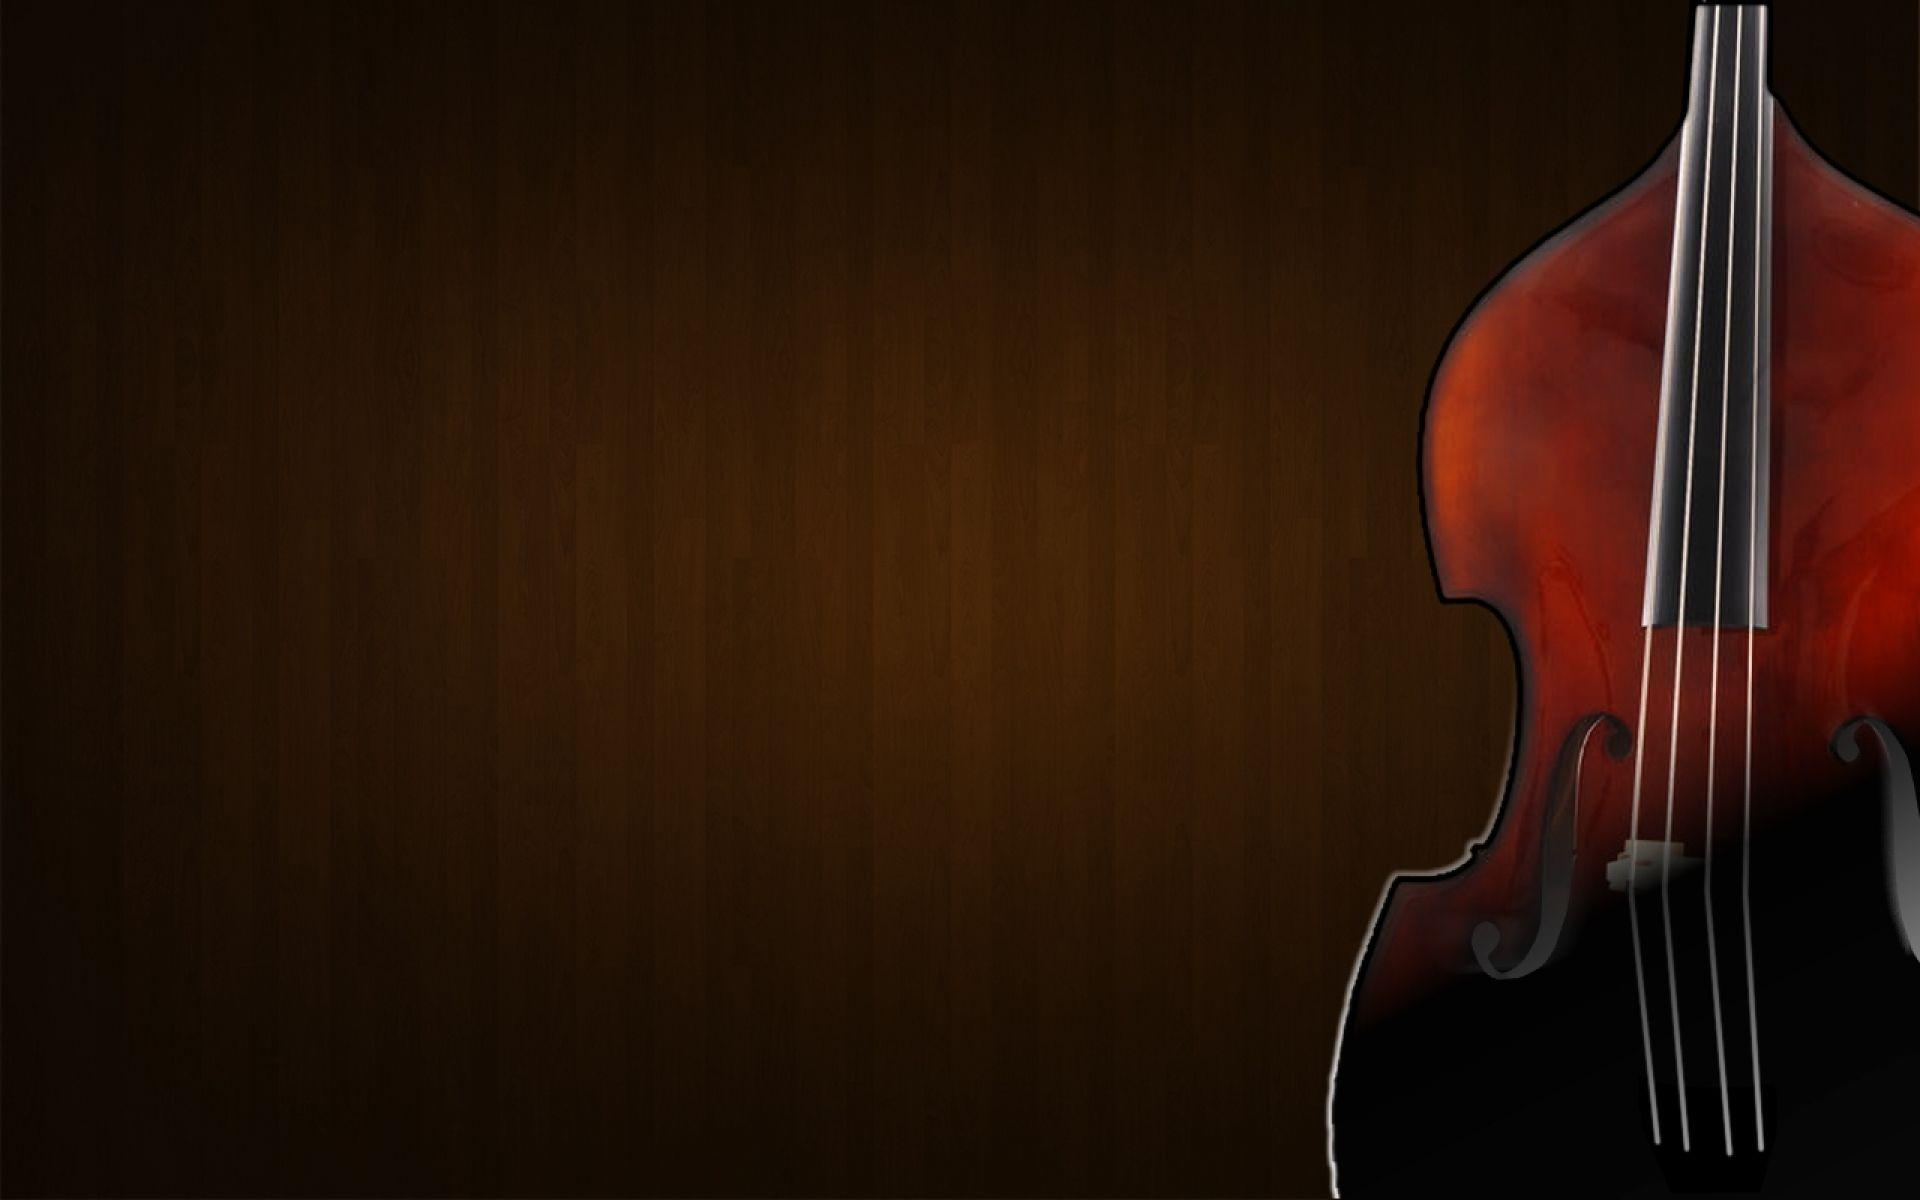 Best 60+ Upright Bass Backgrounds on HipWallpapers